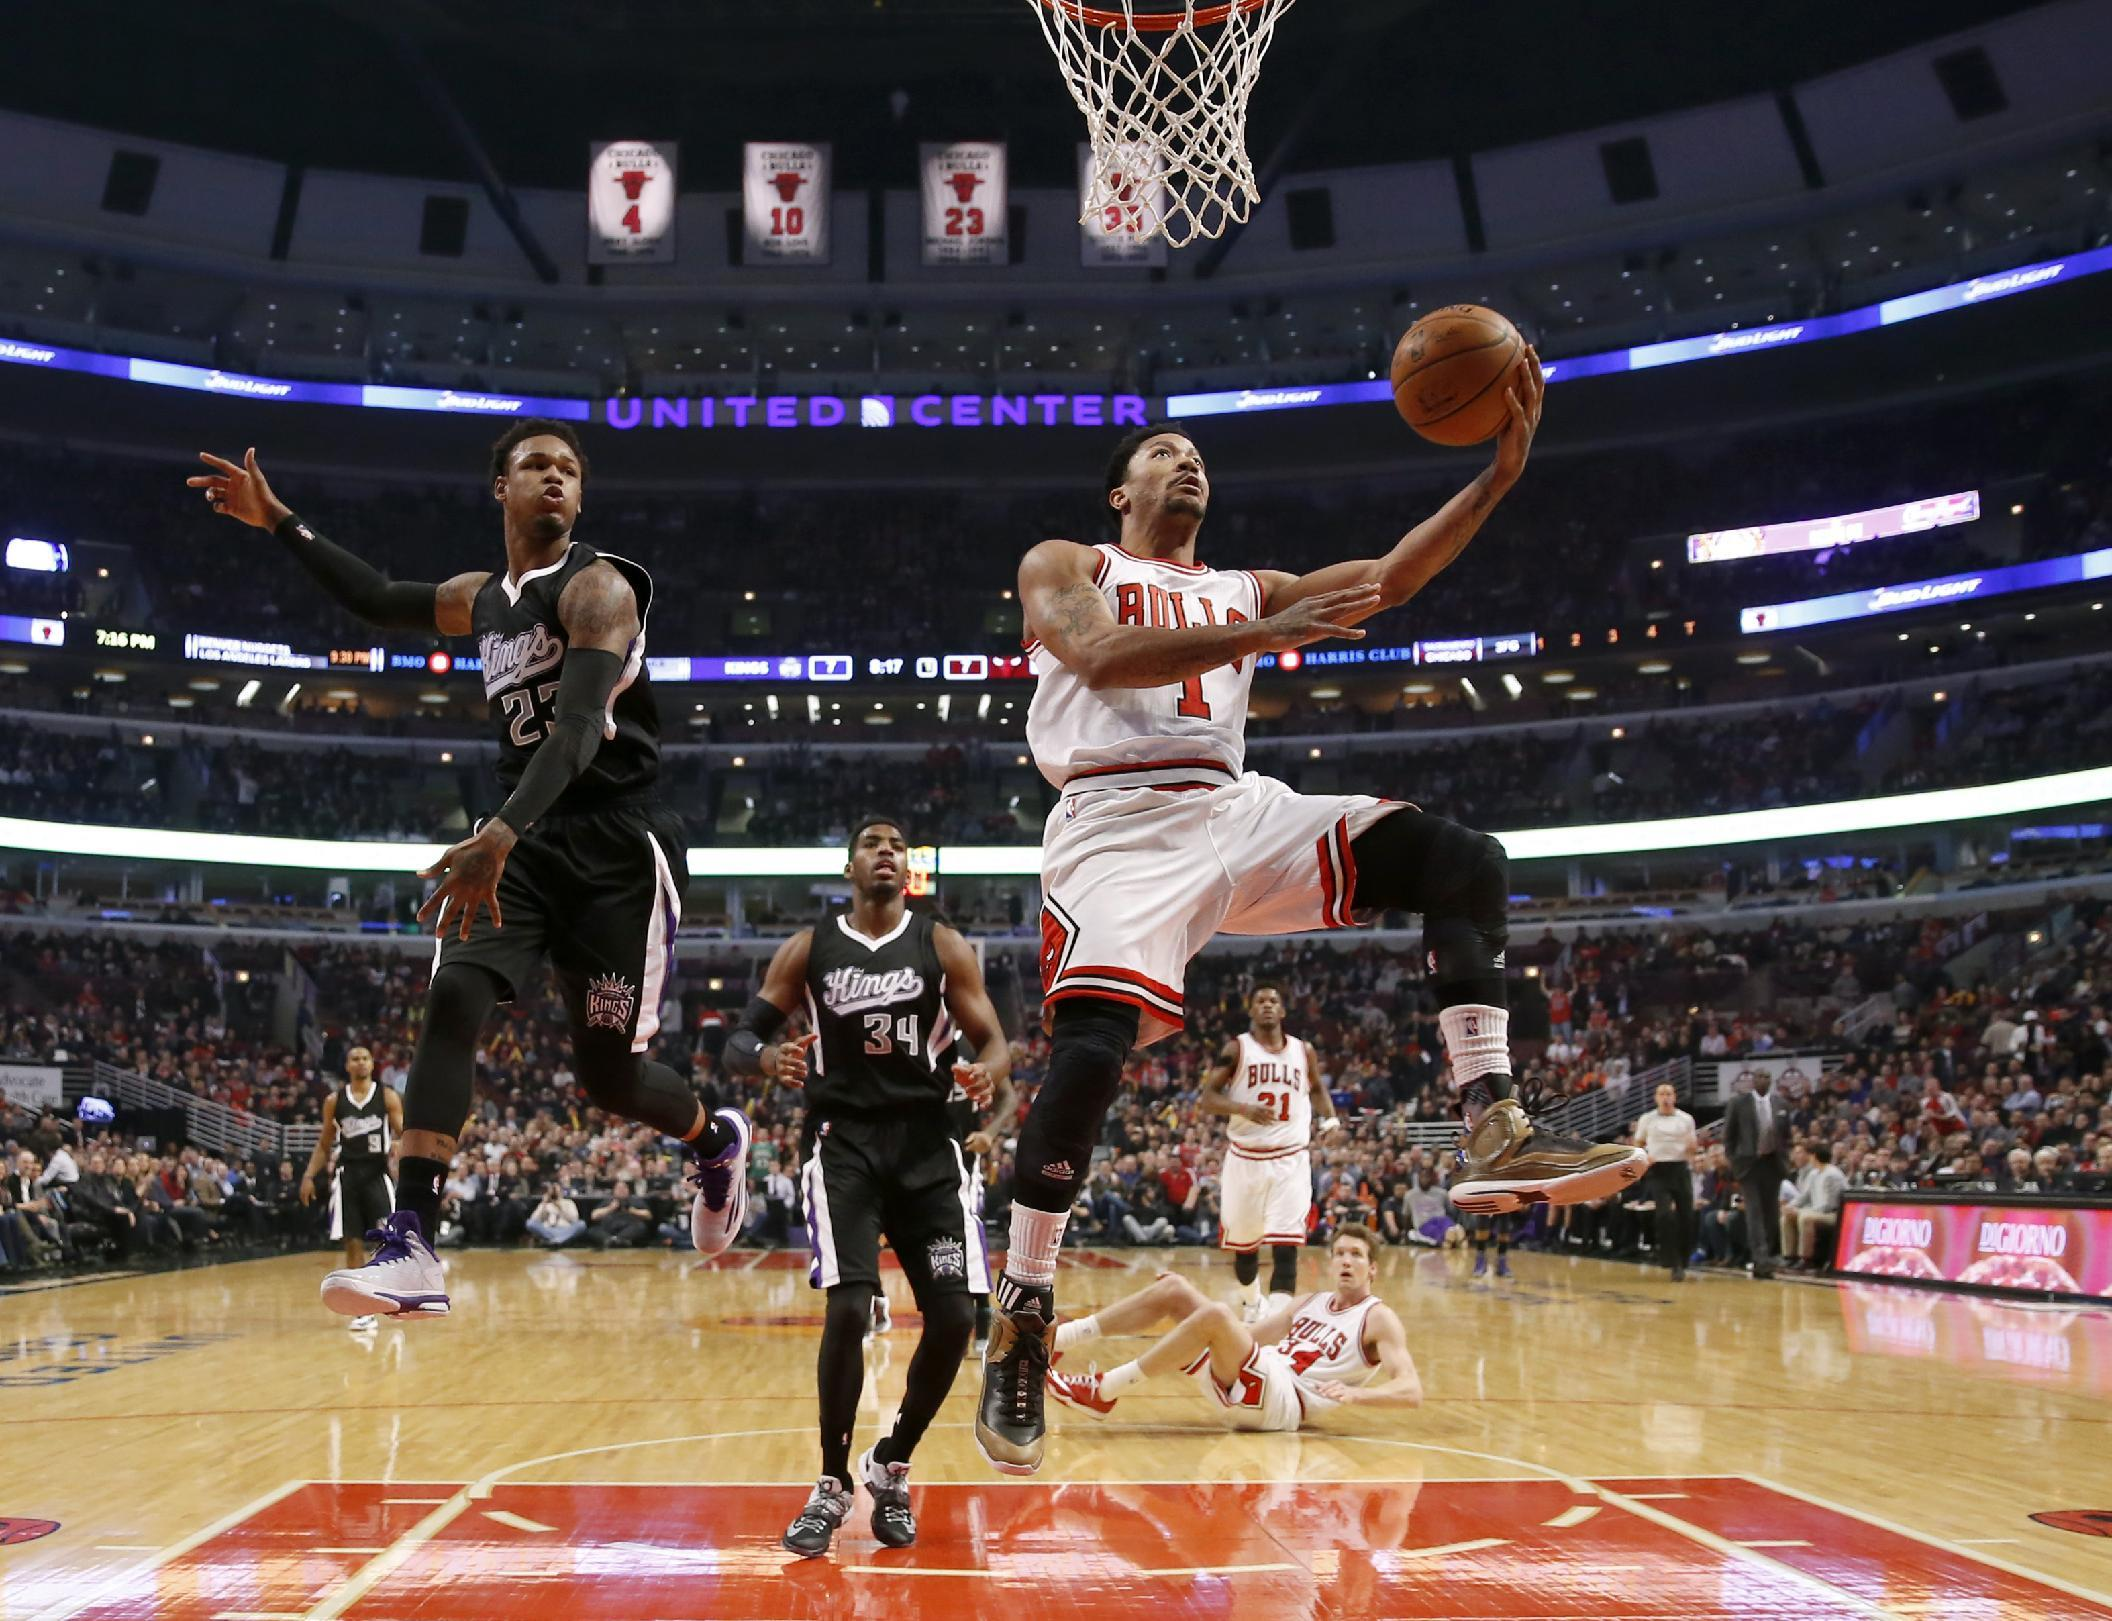 Derrick Rose starts post-surgery rehab, confident in return this season